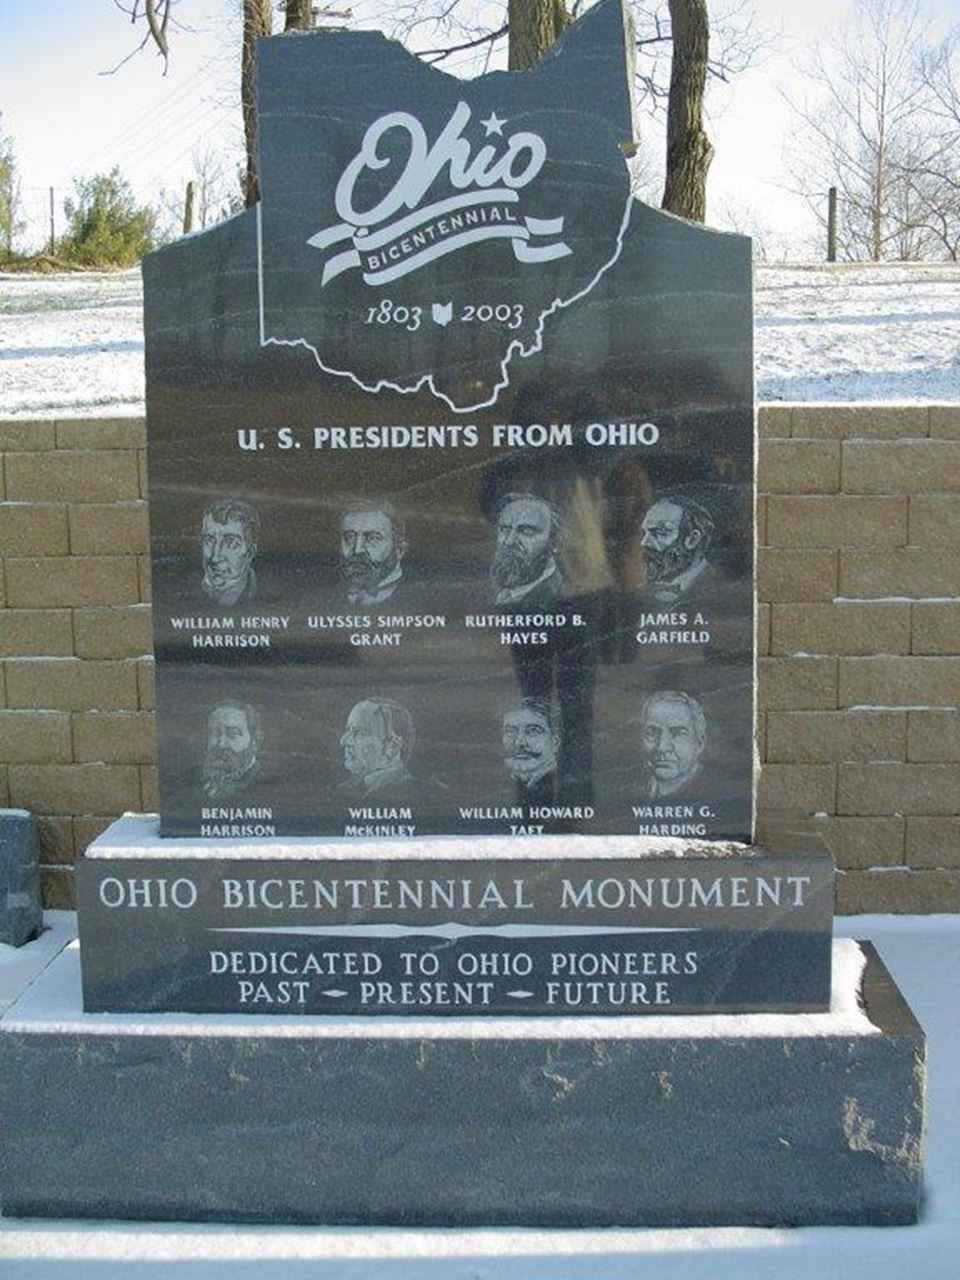 Ohio Bicentennial Monument